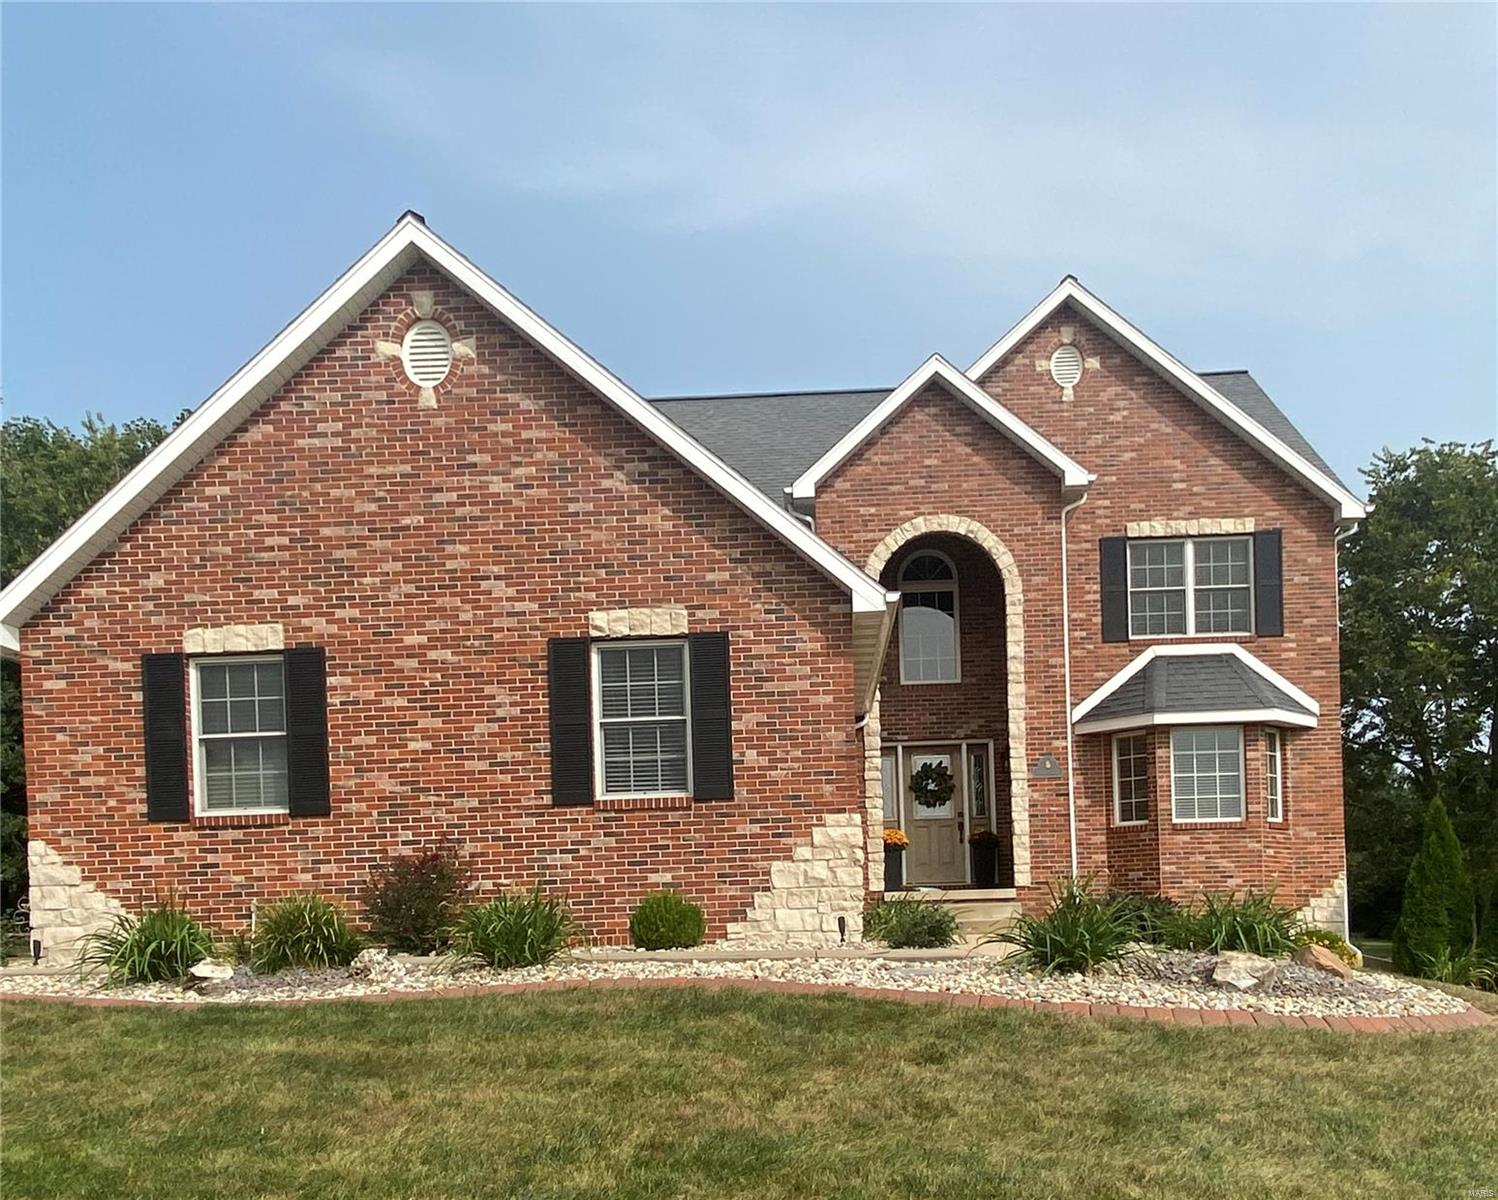 938 Fairway Property Photo - Greenville, IL real estate listing